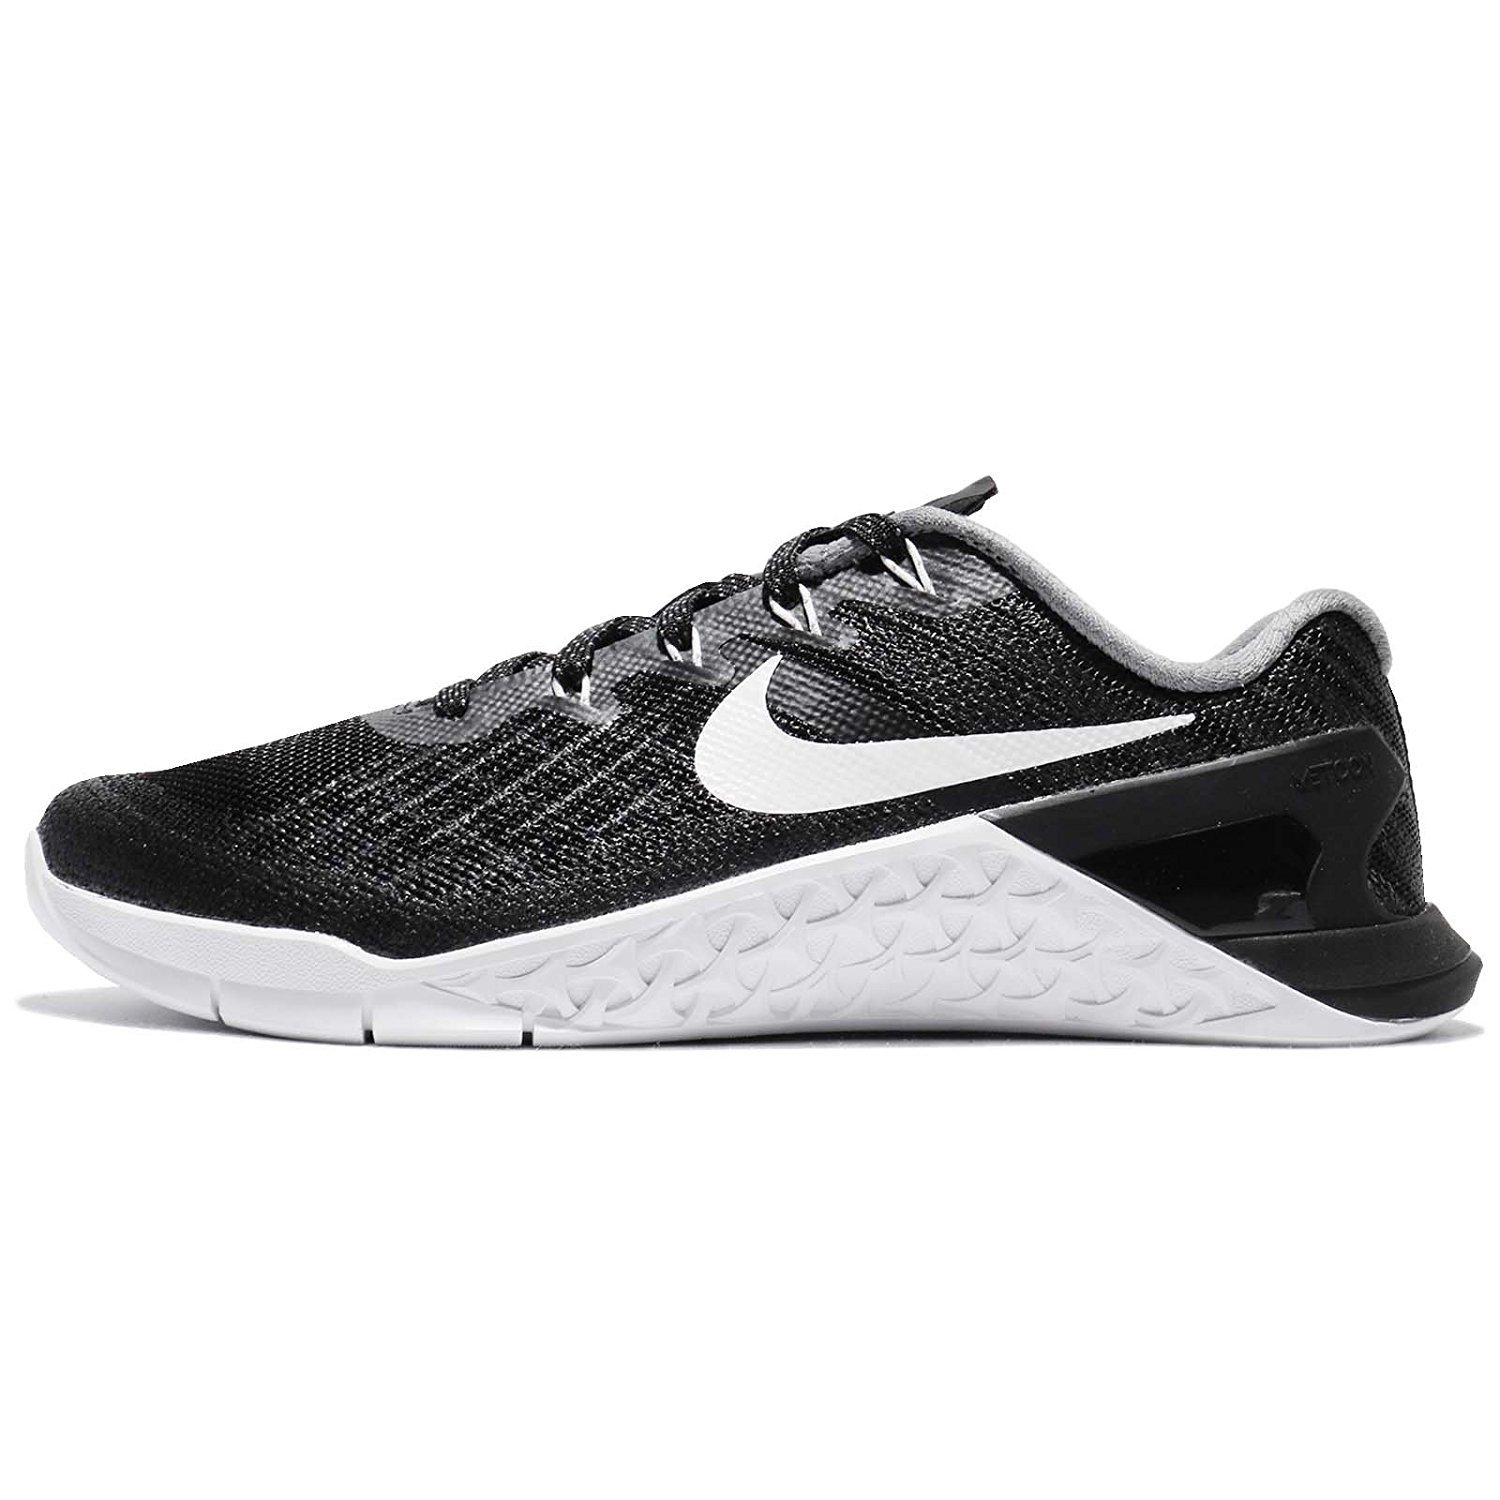 Nike Womens Metcon 3 Training Shoes B005A5F99C 8.5 B(M) US|Black/White